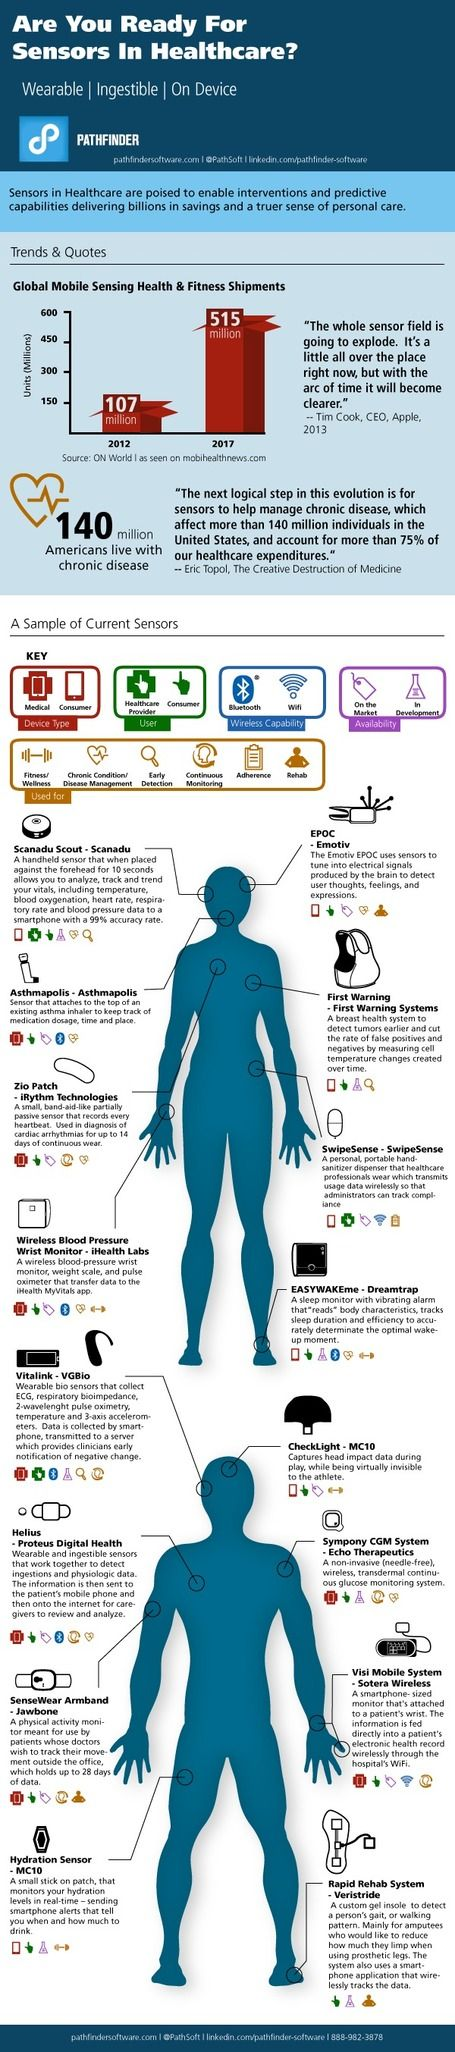 Are you ready for health sensors? Genial infografía :)